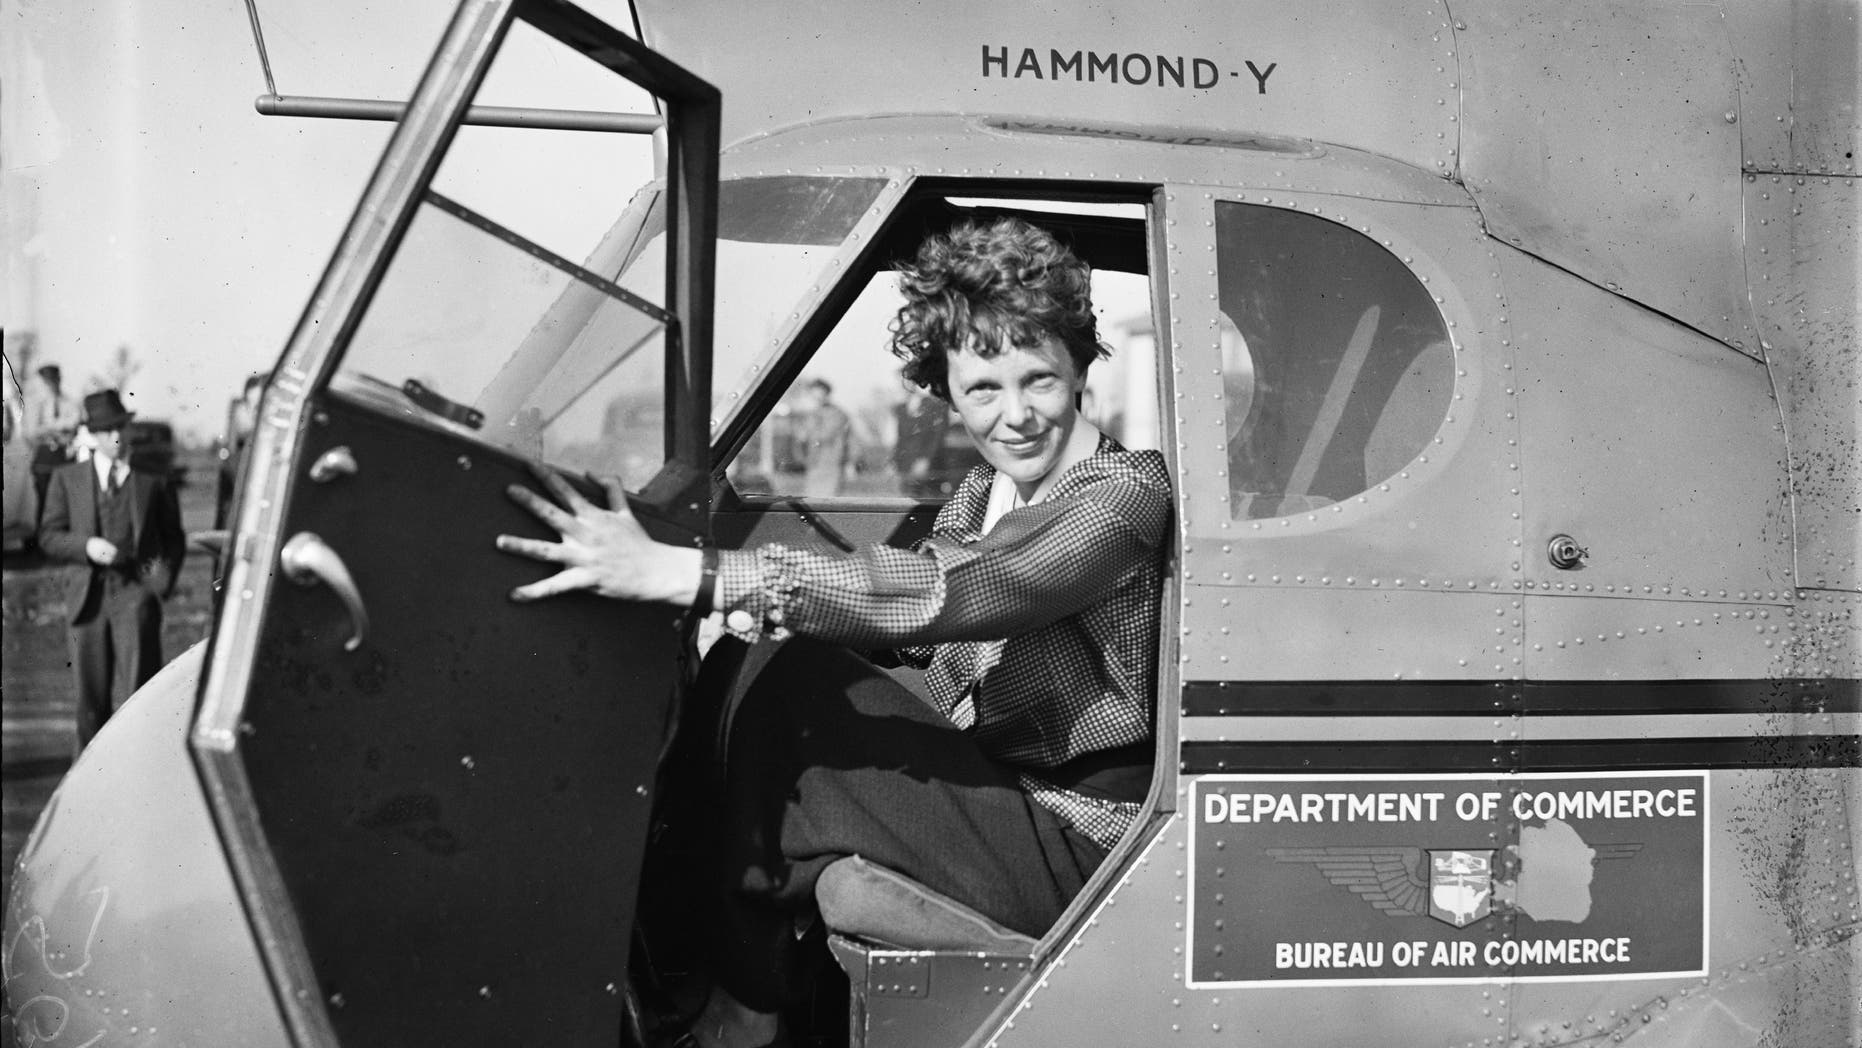 Amelia Earhart was the first woman to fly solo across the Atlantic. (Credit: Library of Congress)